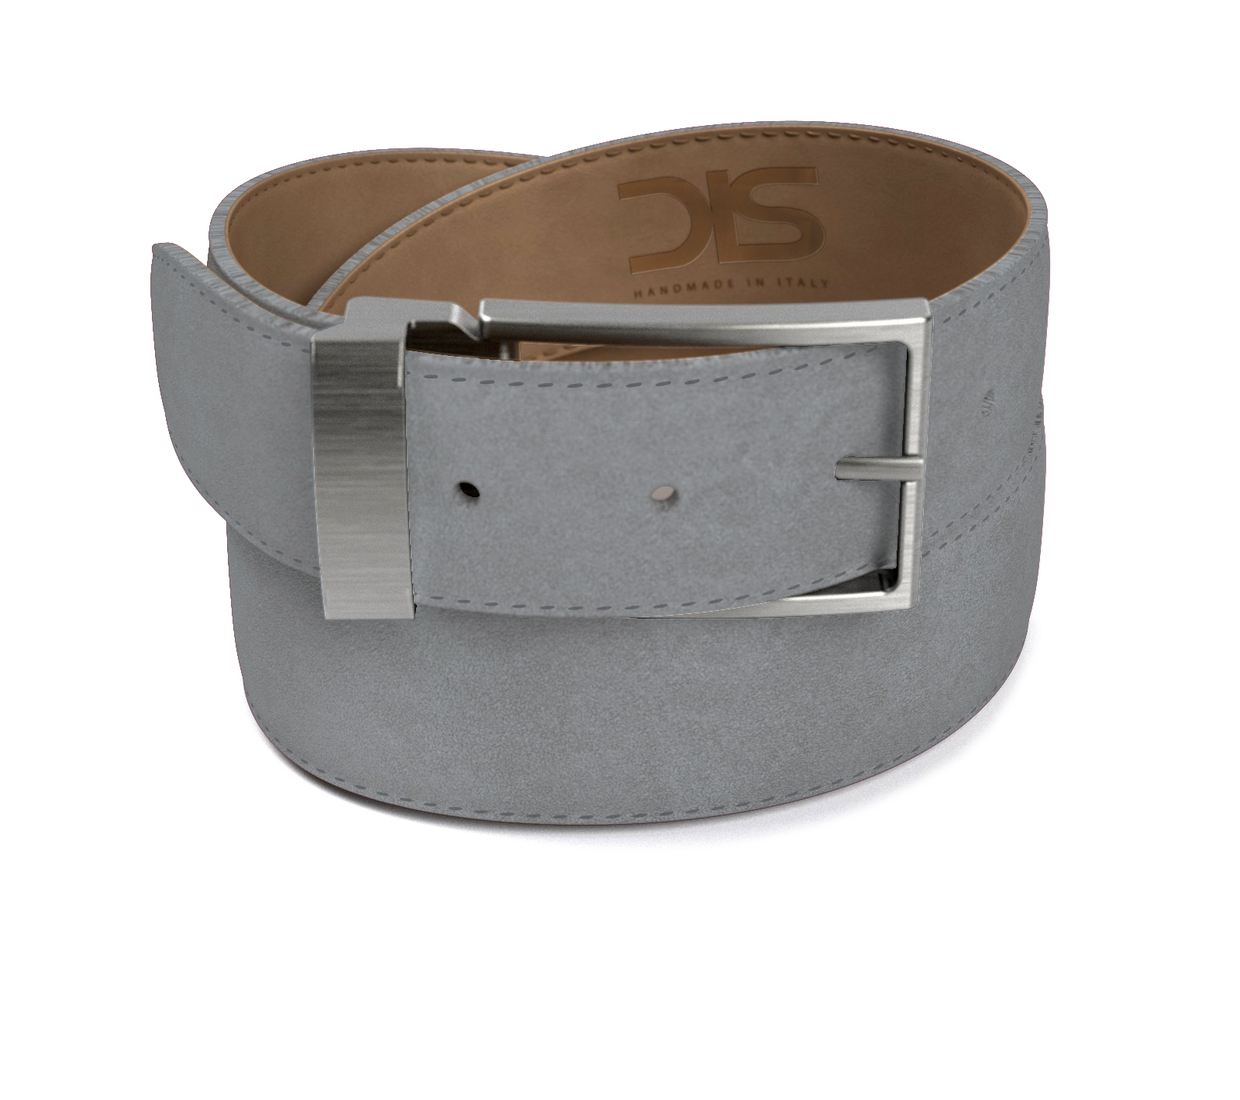 Grey suede leather belt with opaque buckle